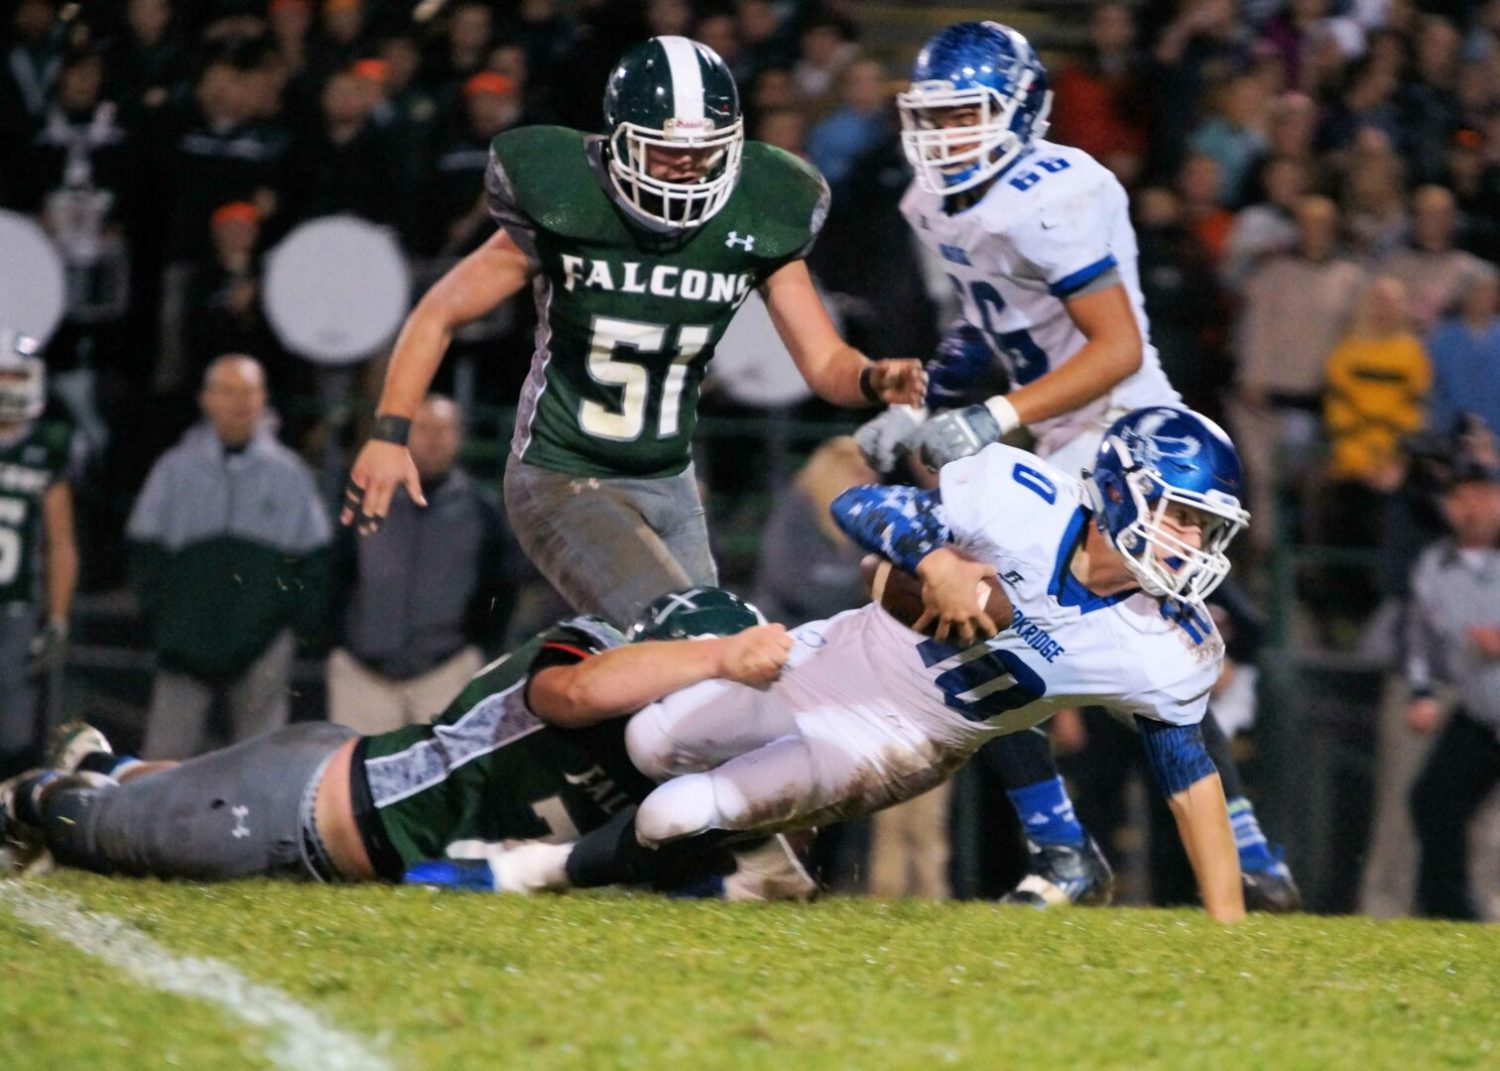 Oakridge falls to two-time defending state champion GR West Catholic in Division 5, 28-14